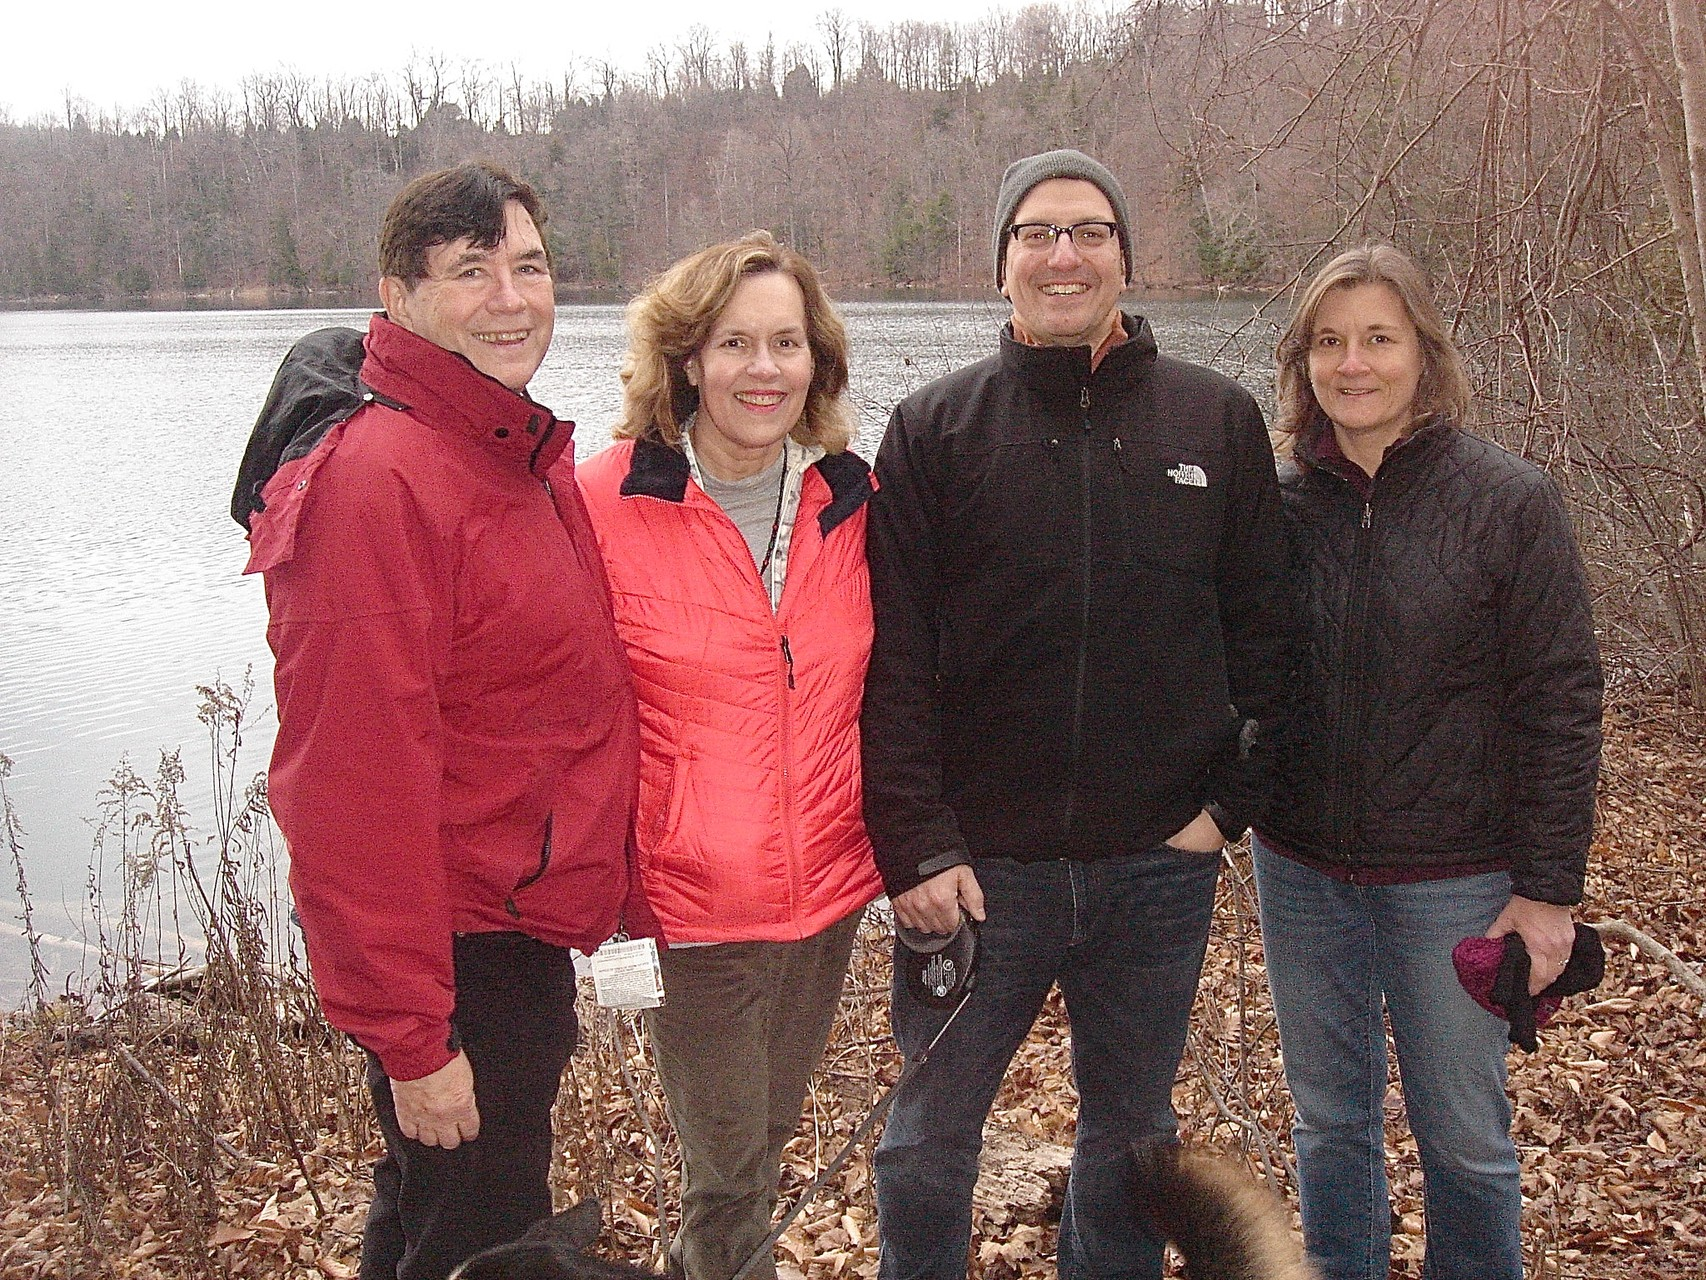 John, Lorraine, Nick & Cyndi walk around Green Lakes, 12-2